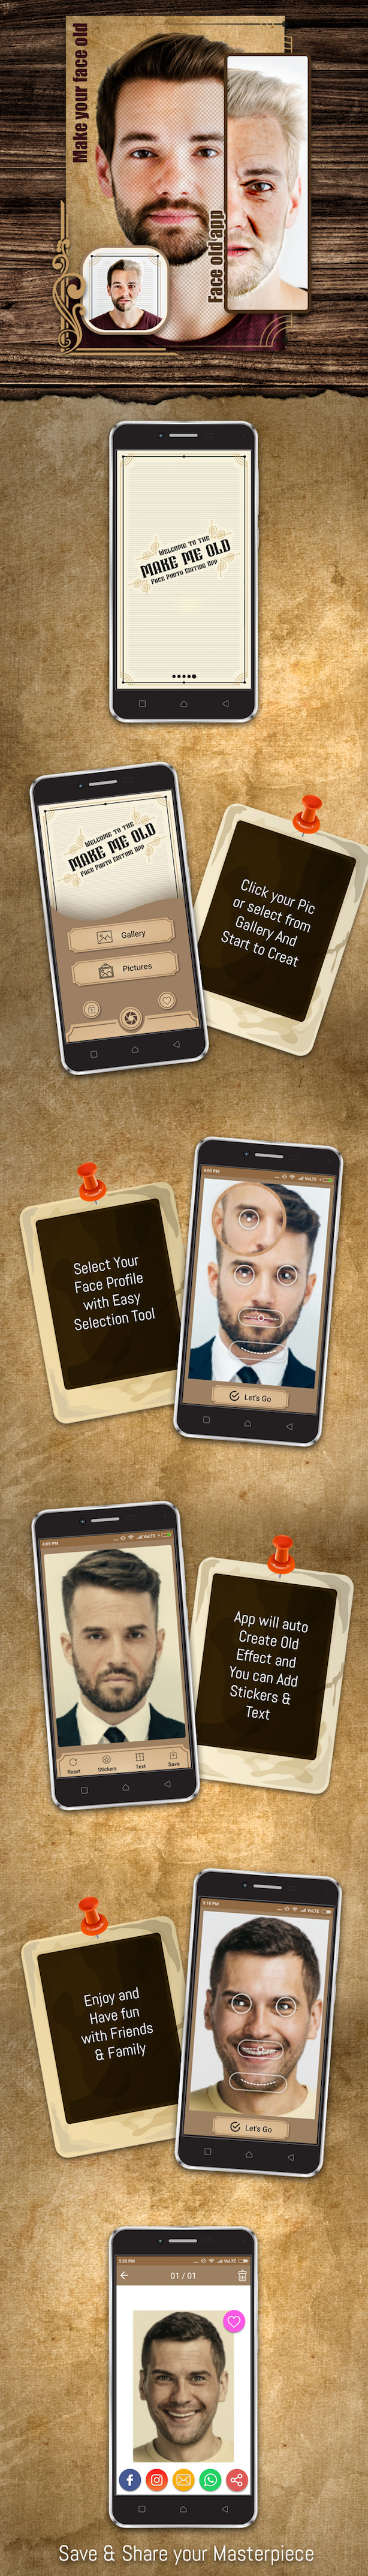 Make your face old , face old app - 1